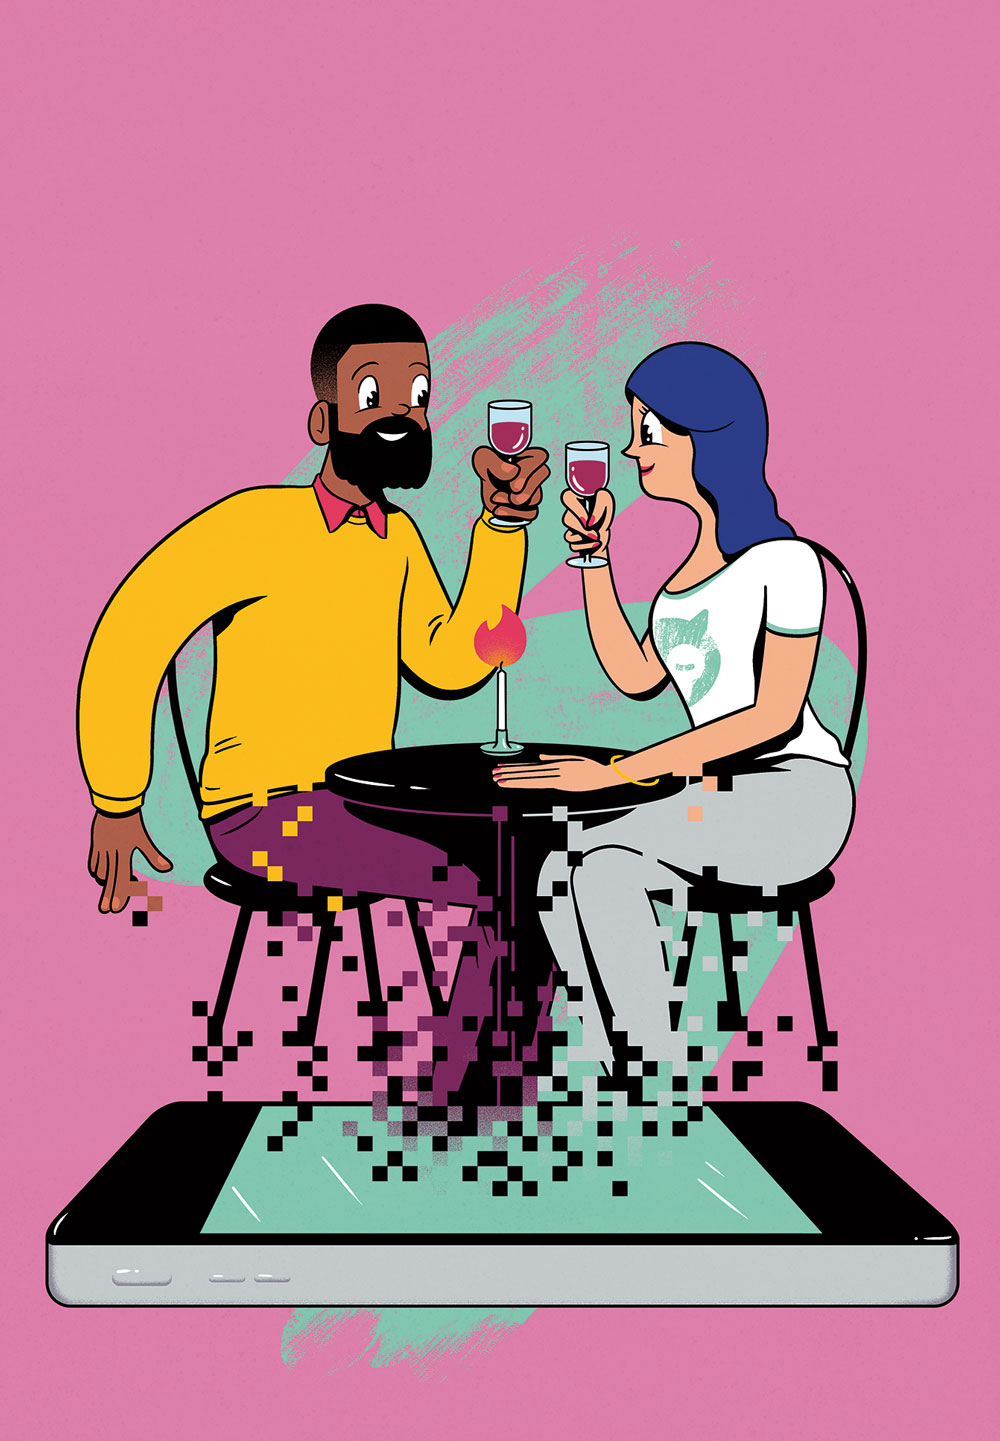 where to bring your tinder date in atlanta this valentine's day, Ideas